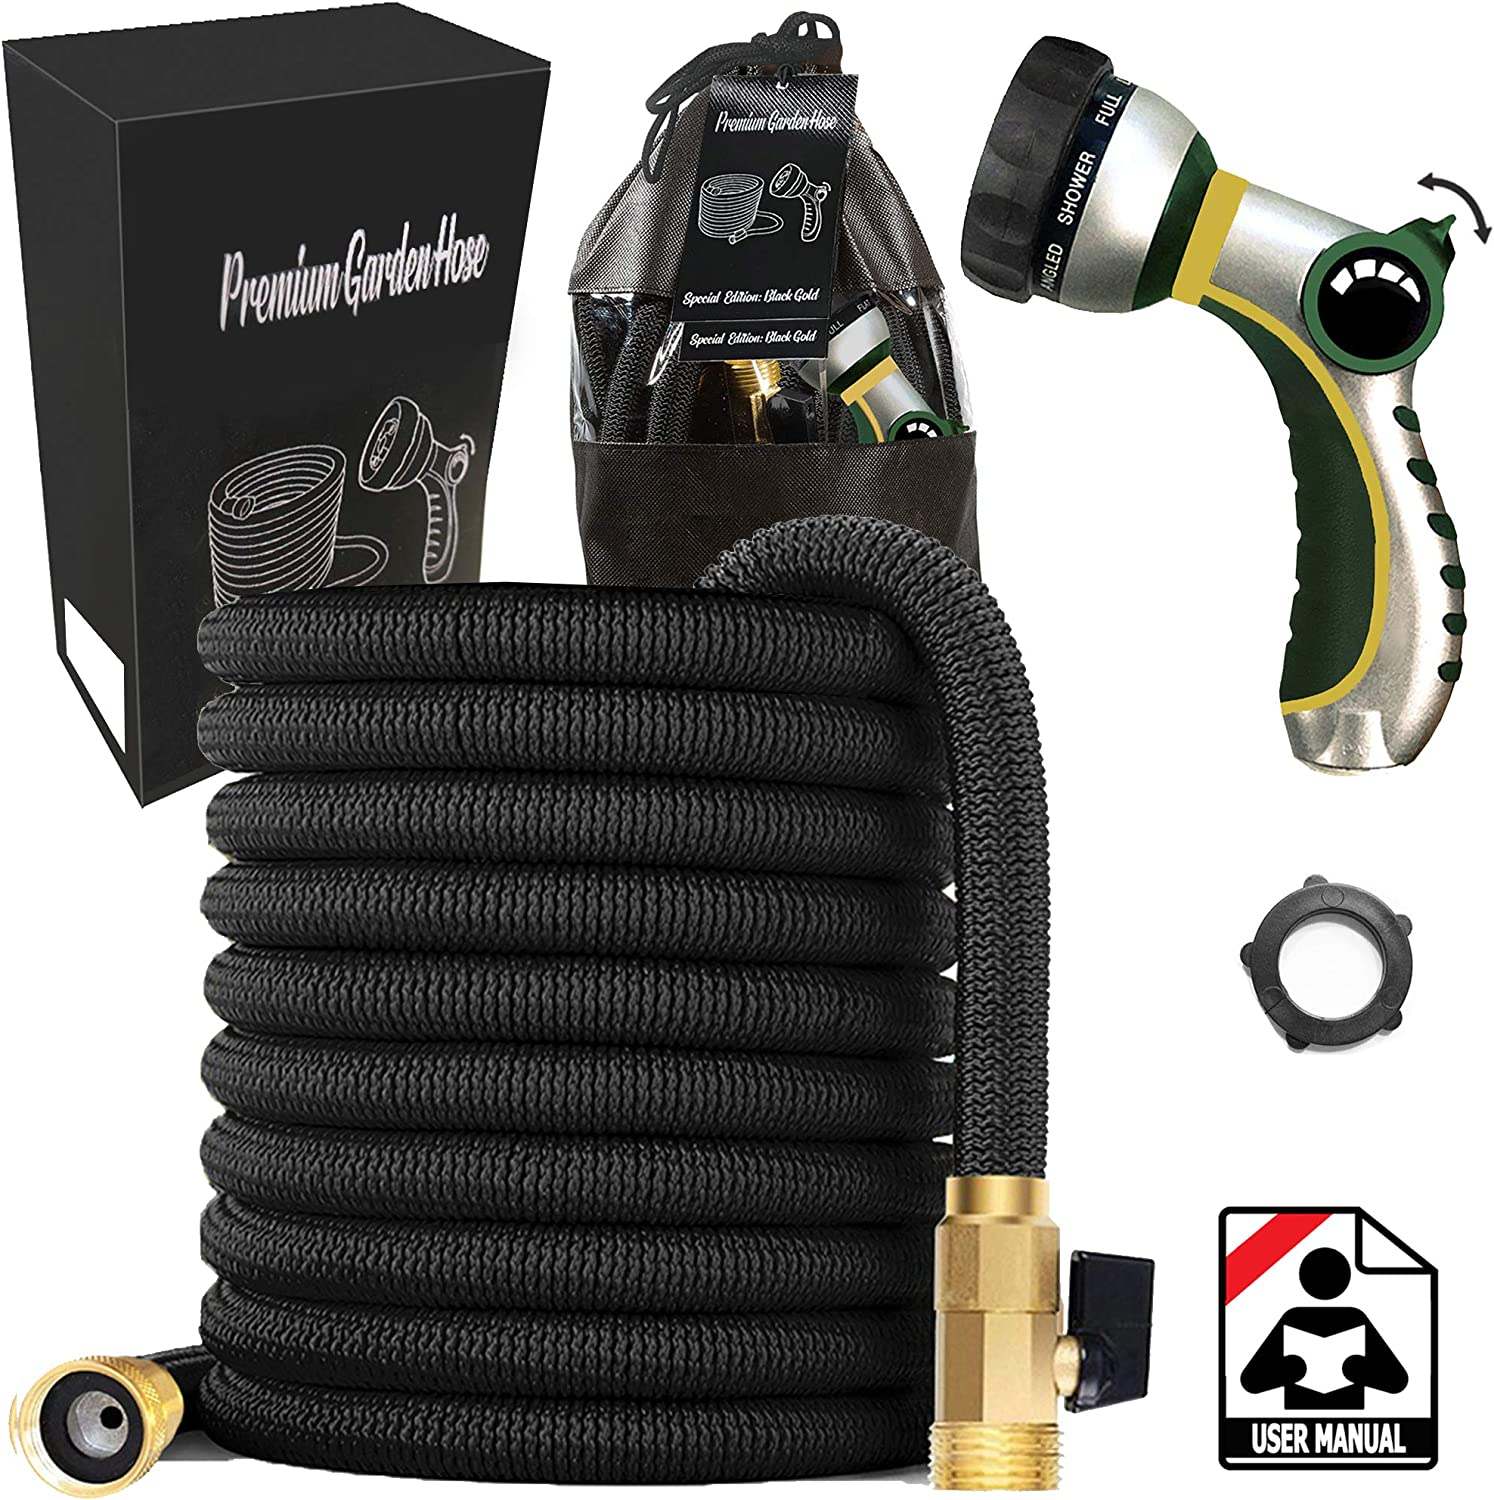 Water Max 59% OFF Our shop OFFers the best service Hose Heavy Duty Expandable – Black Triple Layer 25ft